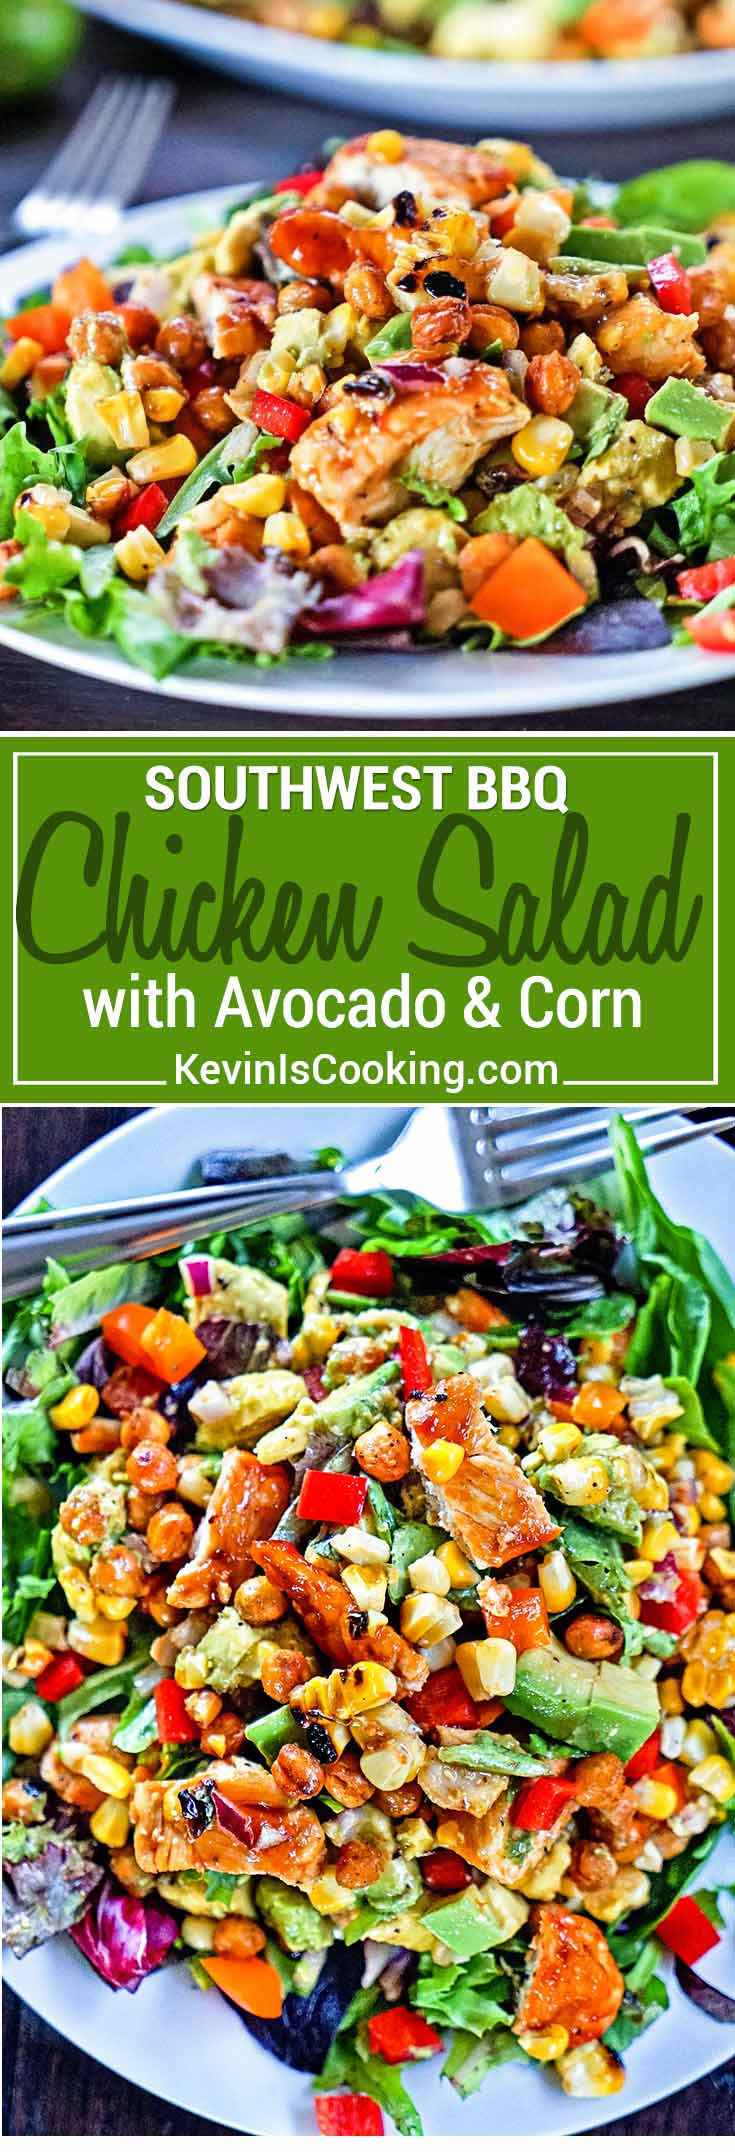 This Southwest BBQ Chicken Salad has it all from grilled corn & BBQ chicken, avocado, bell peppers and dried apricots. A lime and honey dressing makes it!